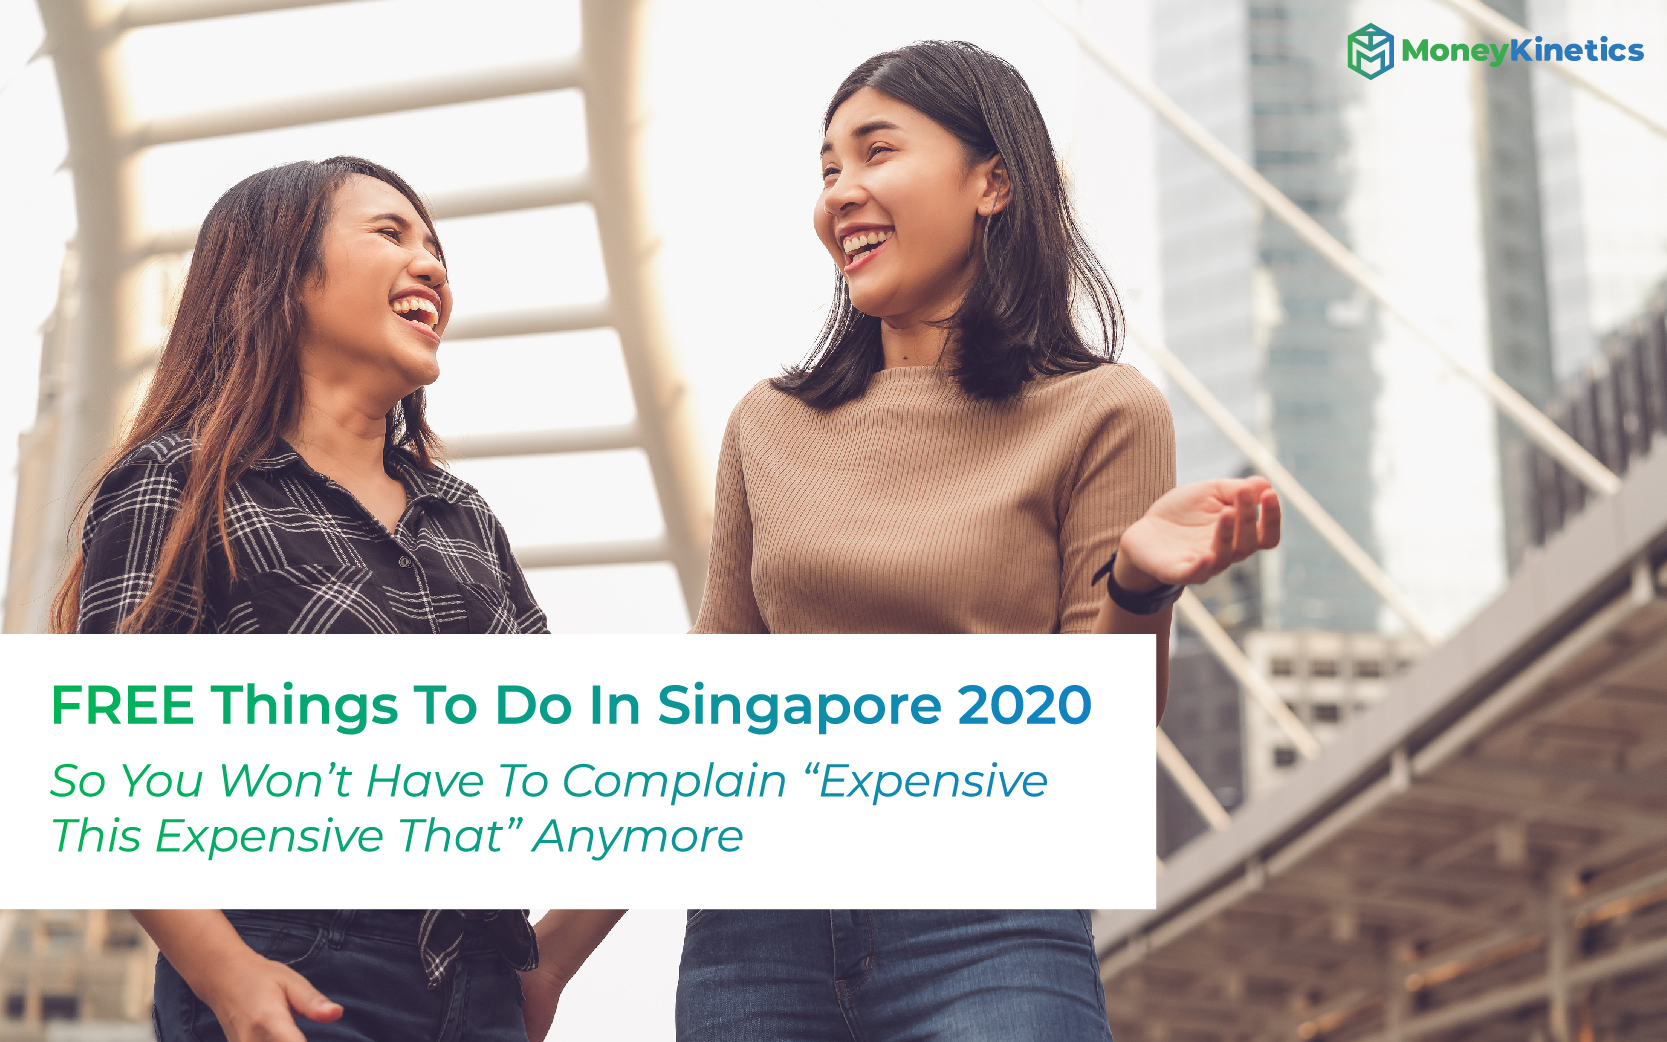 """10 FREE Things To Do In Singapore 2020 So You Won't Have To Complain """"Expensive This Expensive That"""" Anymore"""